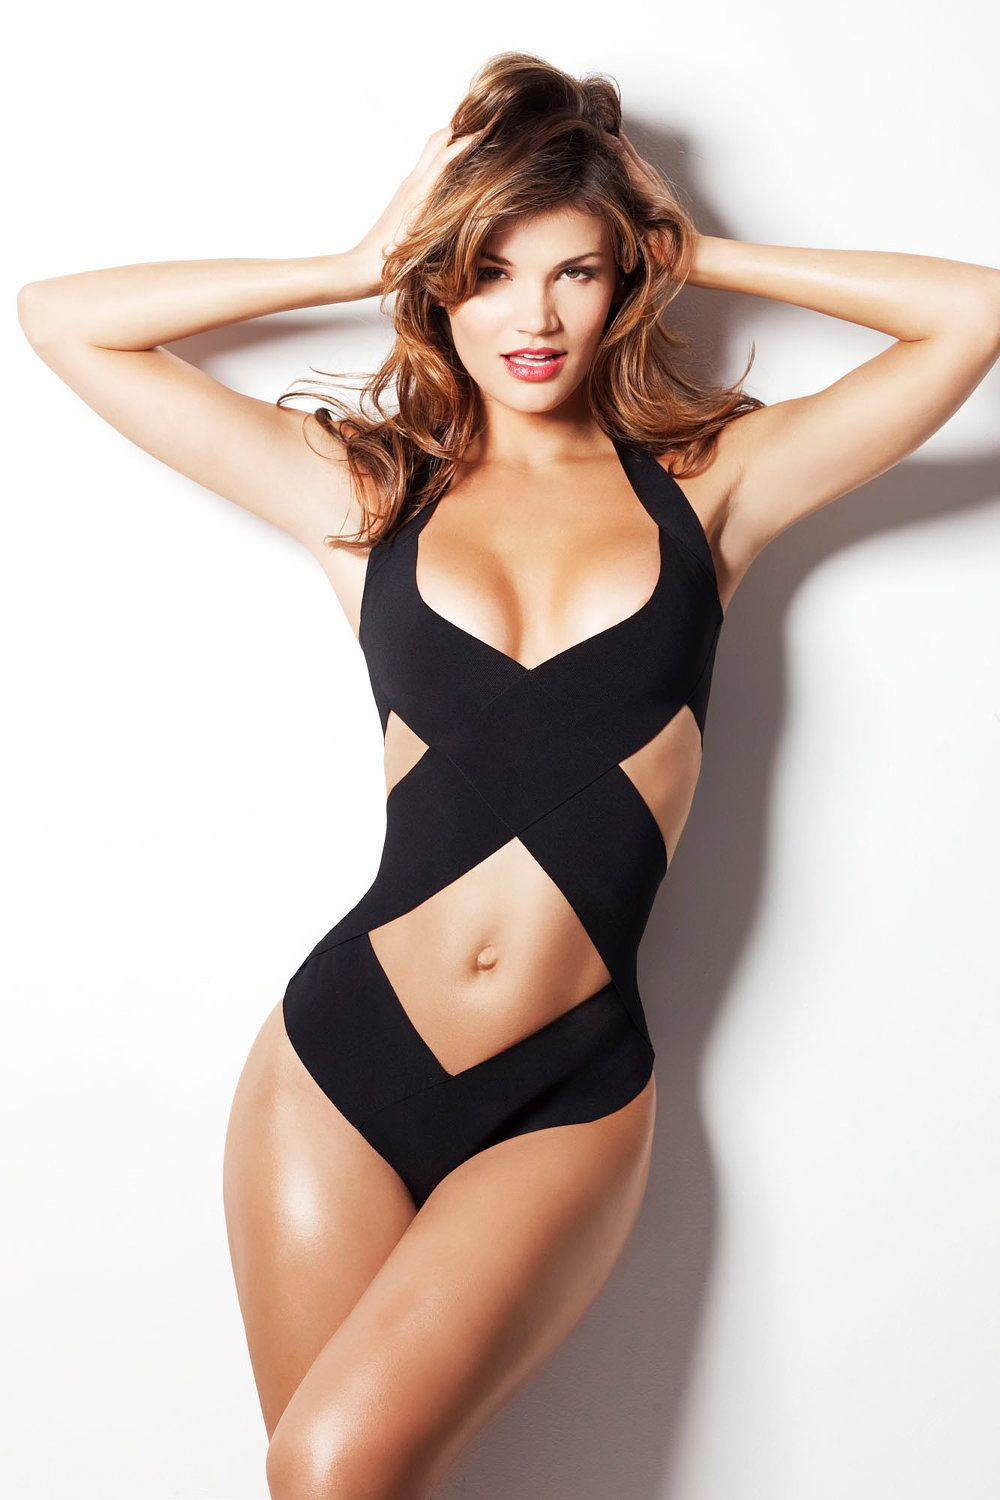 d3dc035004770 Bandage swimsuit  bathing suit as seen in GQ